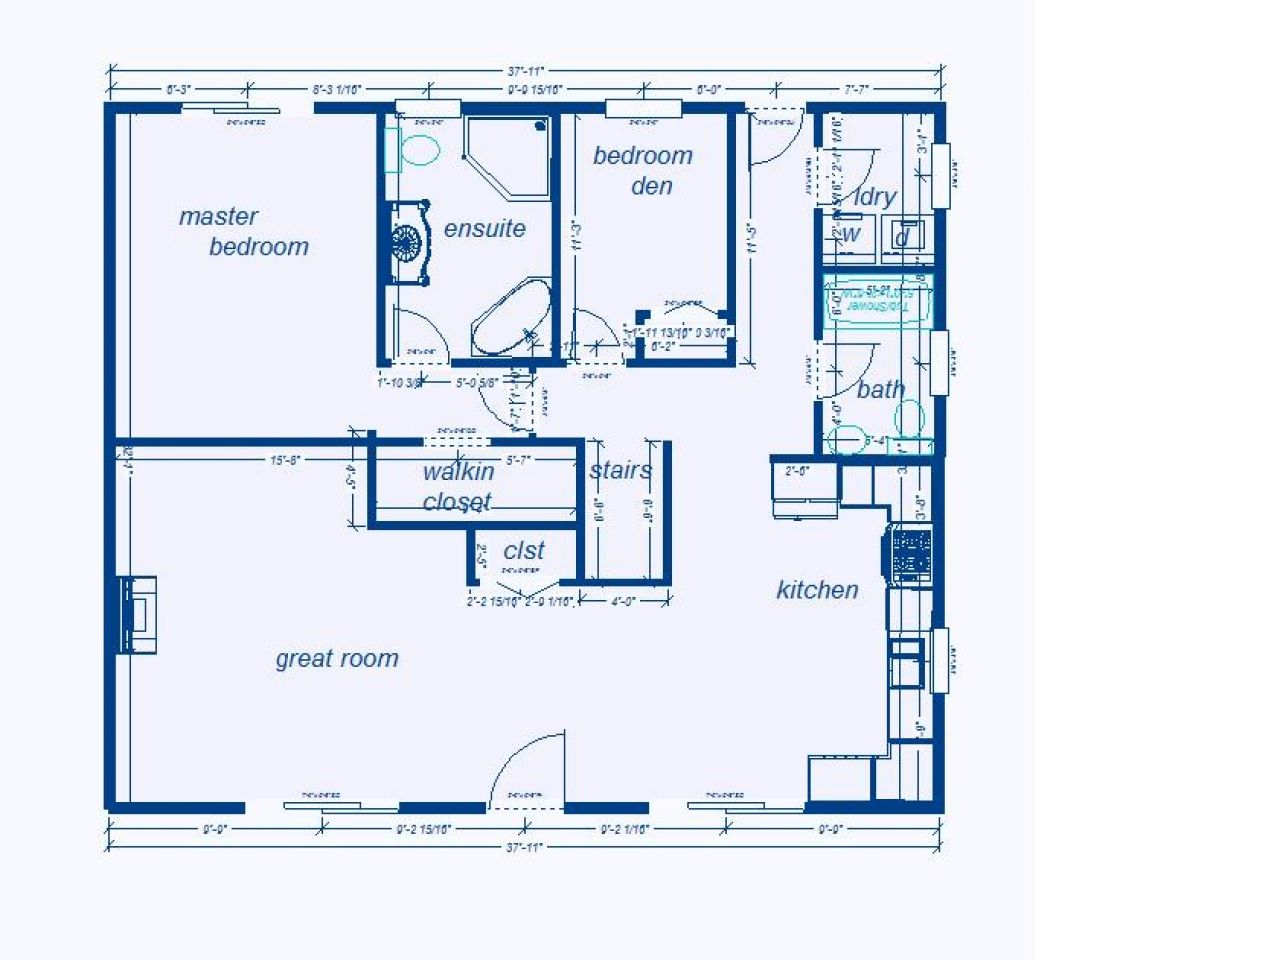 Foundation plans for houses blueprint house free in 12 top for House building blueprints